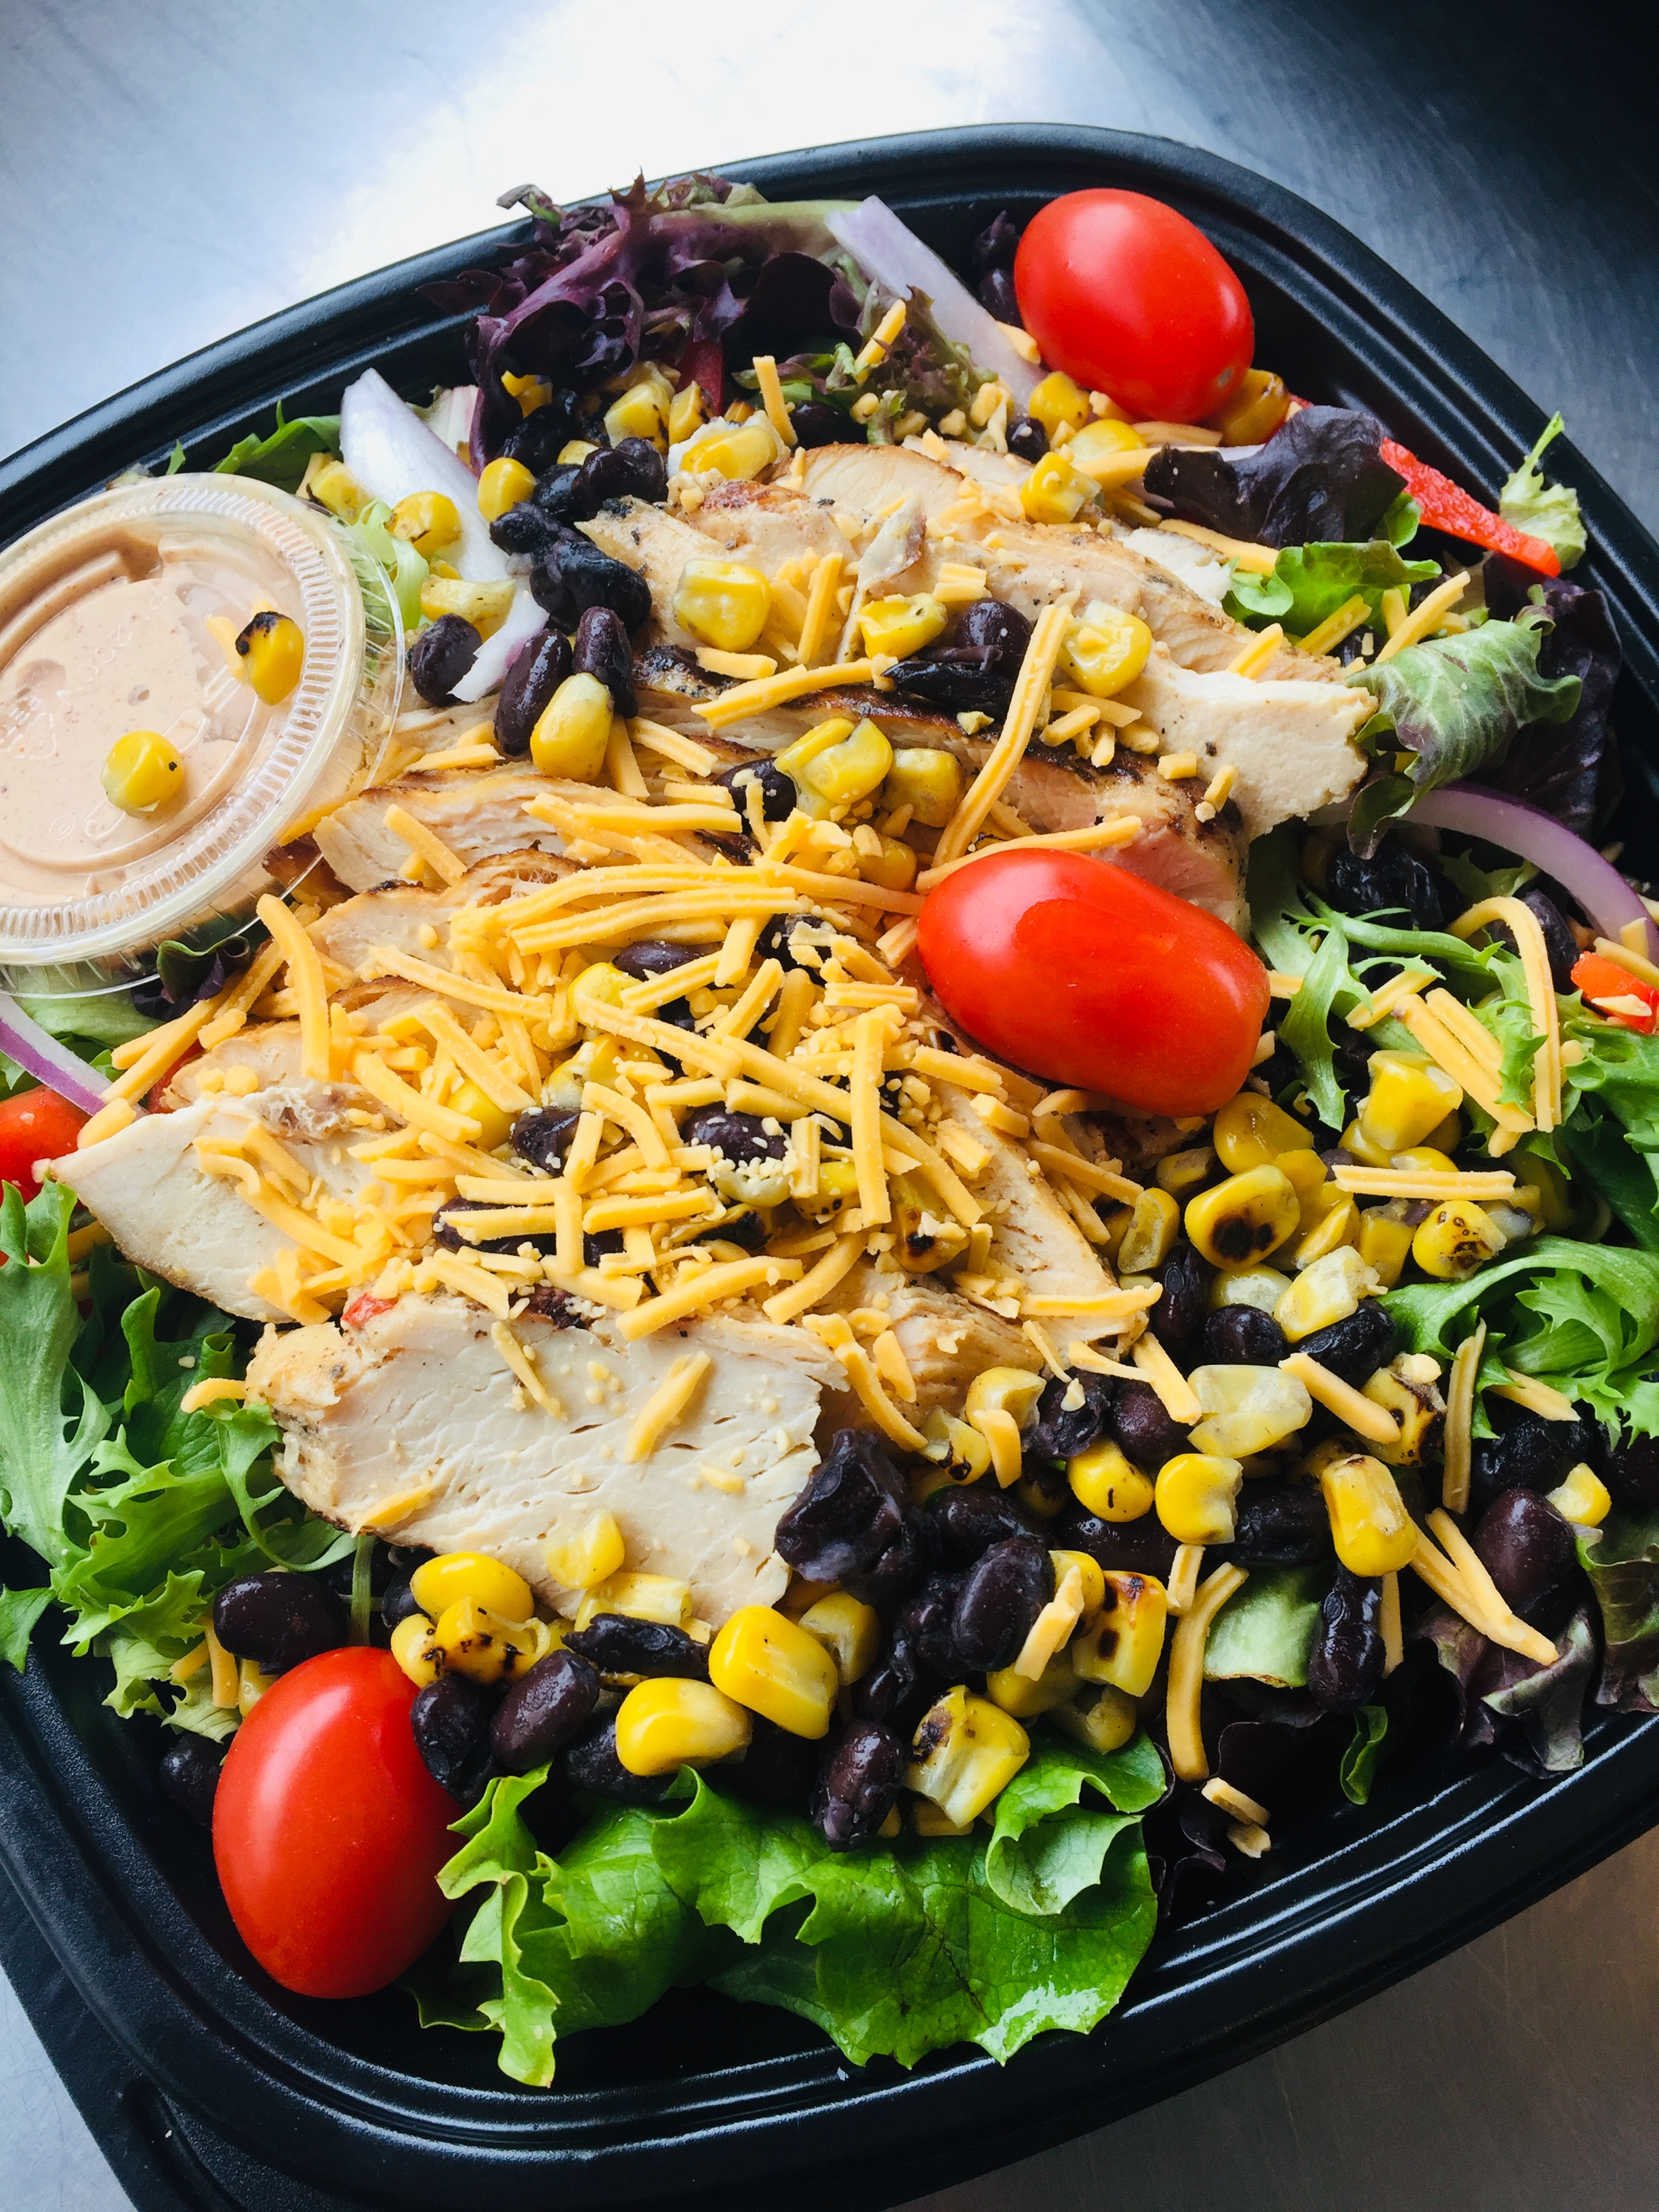 Southwest Salad:  (Lettuce, Cheddar Cheese, Grilled Chicken, Black Beans, Roasted Corn, Peppers with Southwest Dressing)